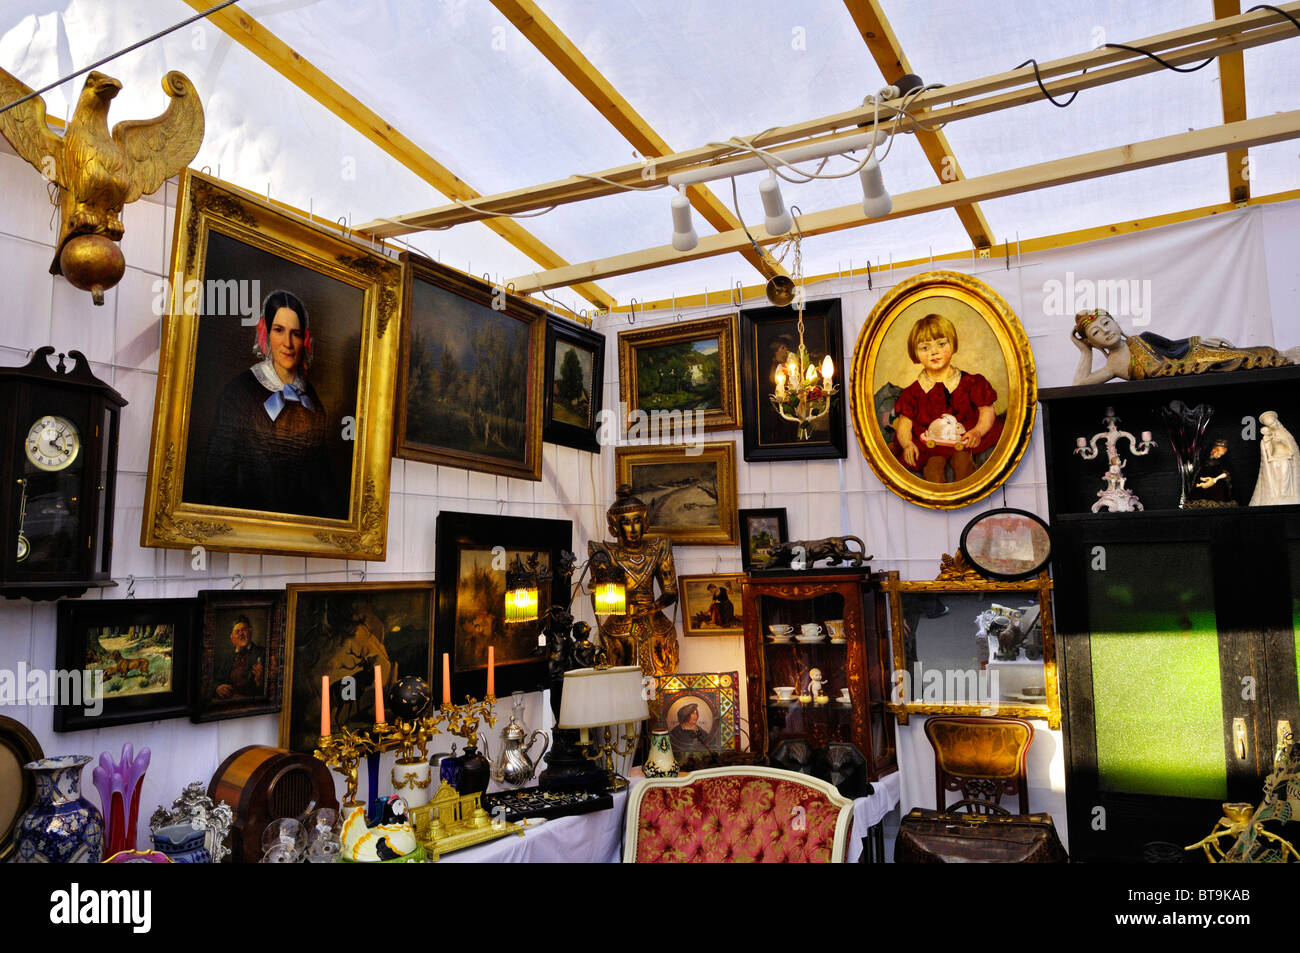 Paintings and knick-knacks, Auer Dult fair, Munich, Bavaria, Germany, Europe Stock Photo